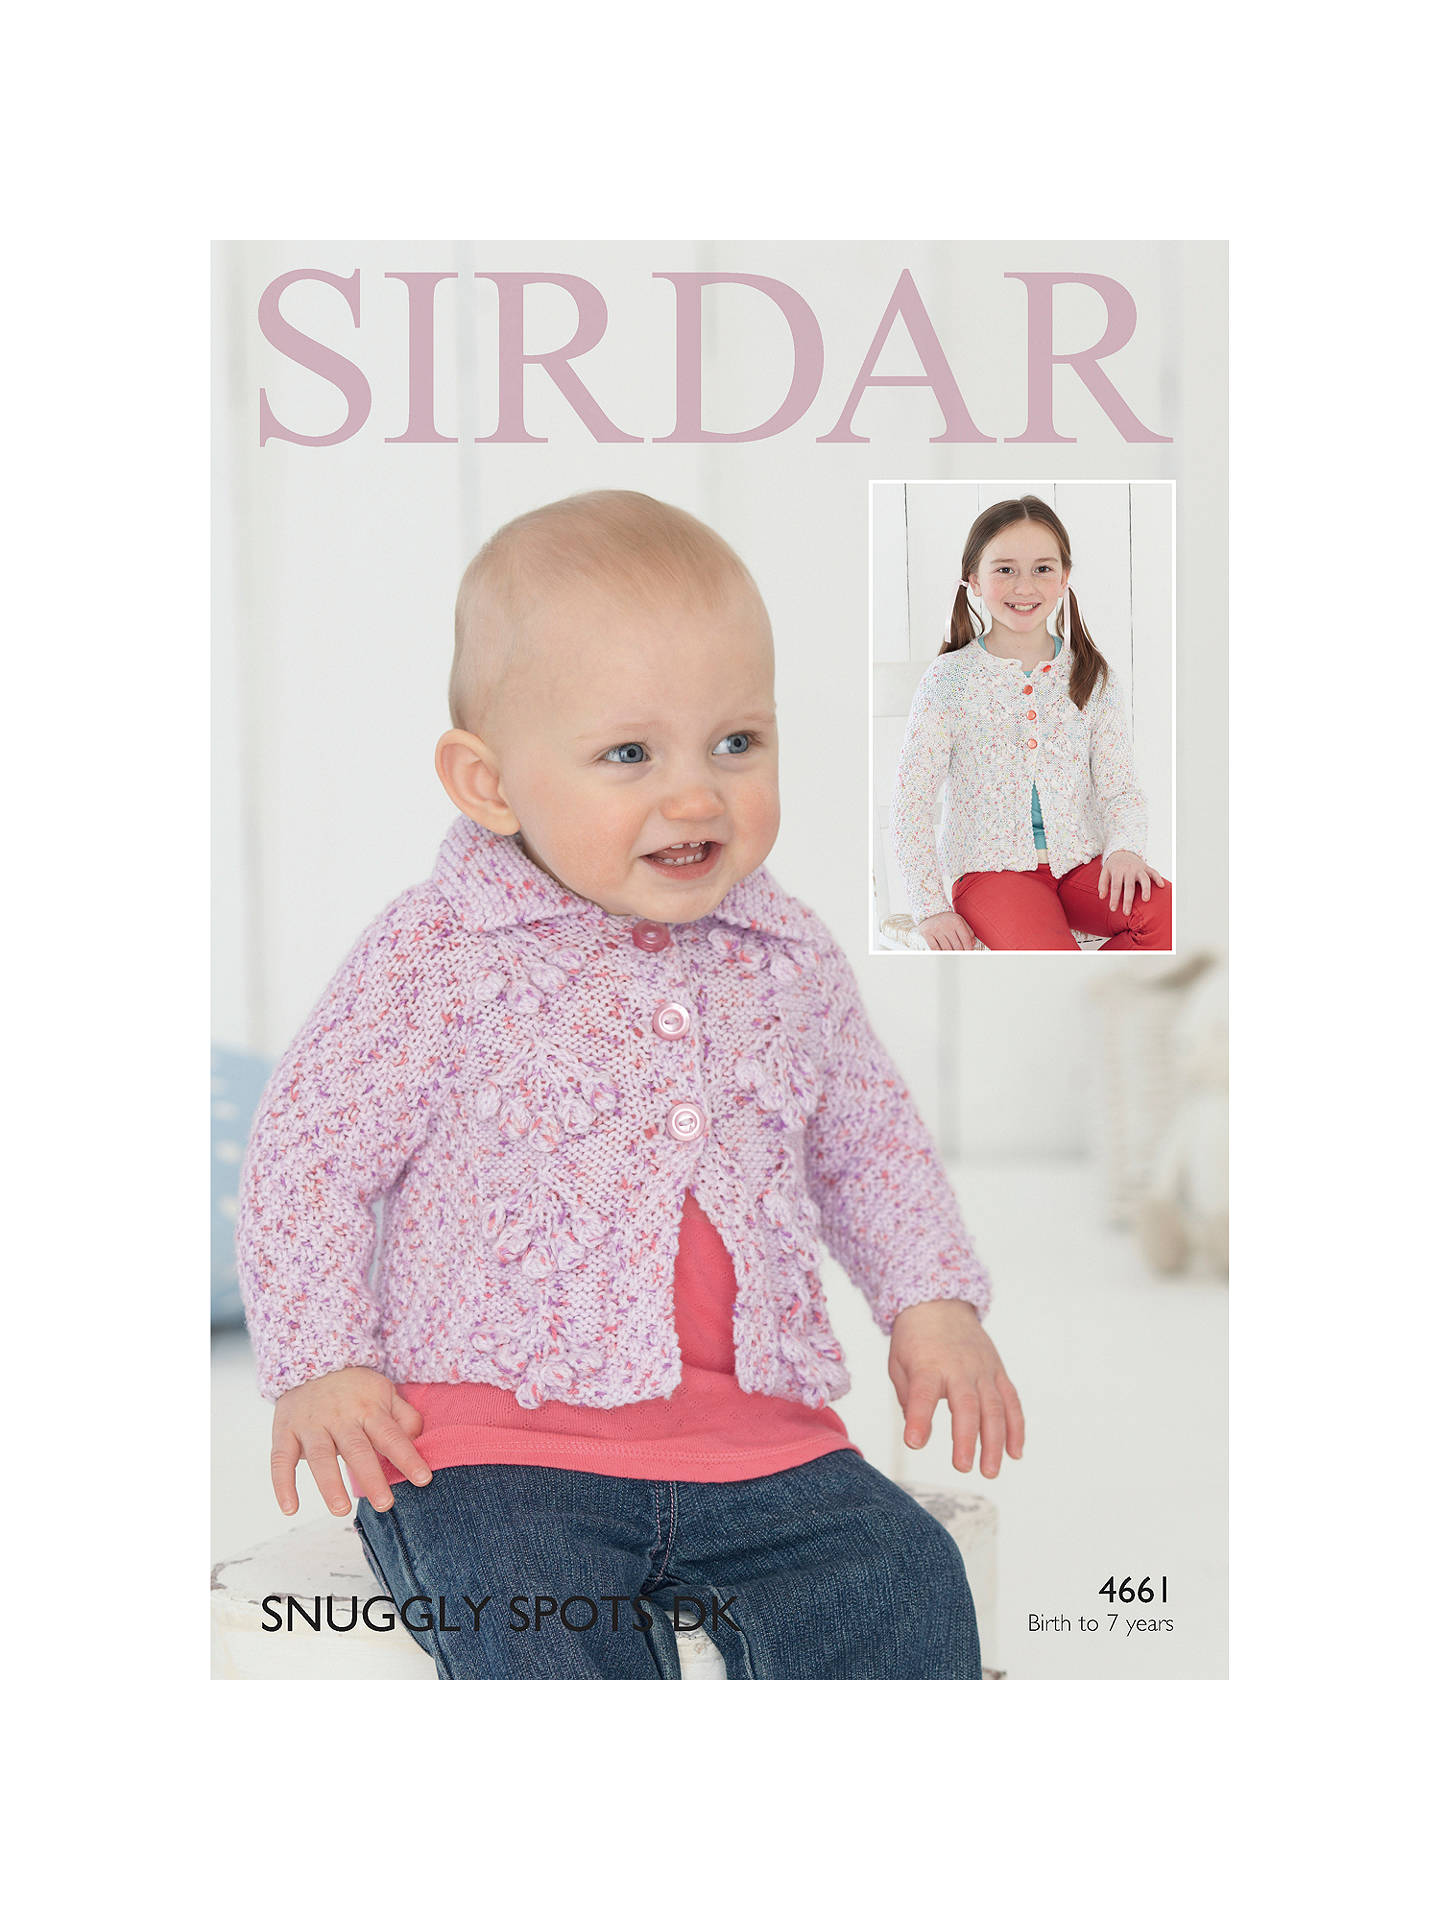 Buy Sirdar Snuggly Spots DK Baby Cardigan Knitting Paper Pattern, 4661 Online at johnlewis.com